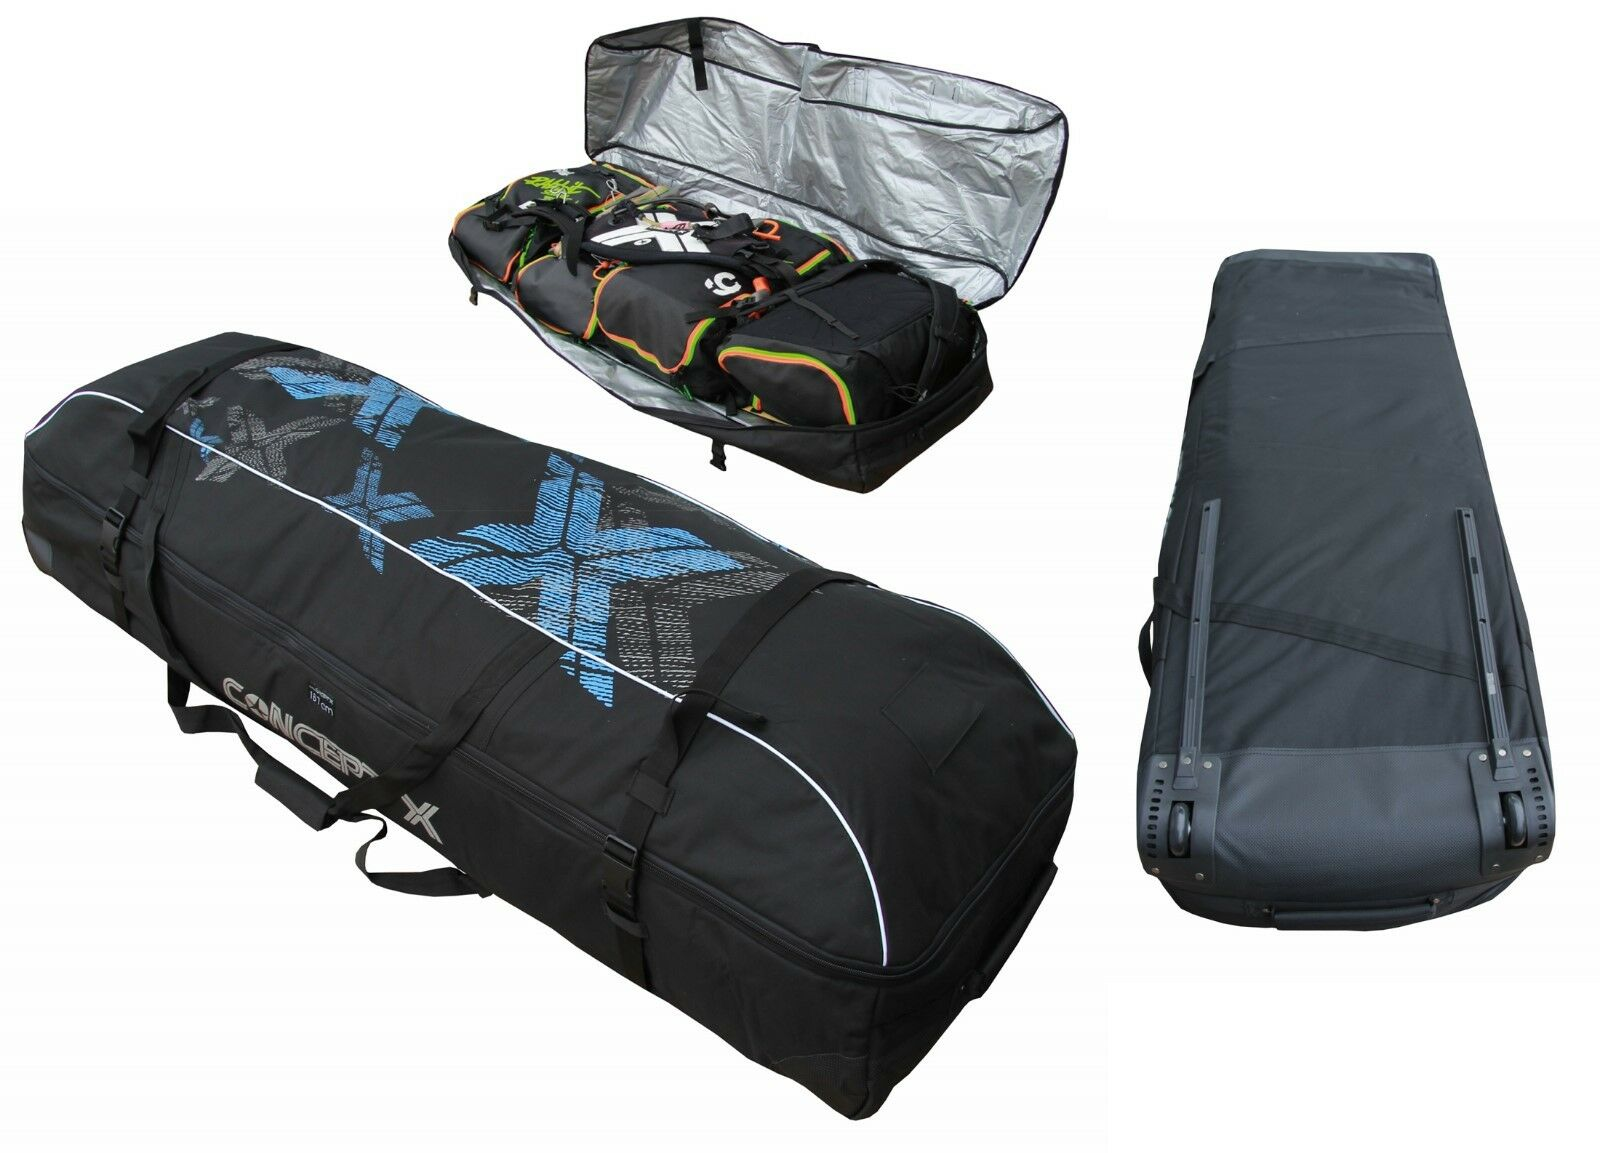 Kitebag Xplorer 149, Kite Travel Bag, Board Bag, reisebag, Bag